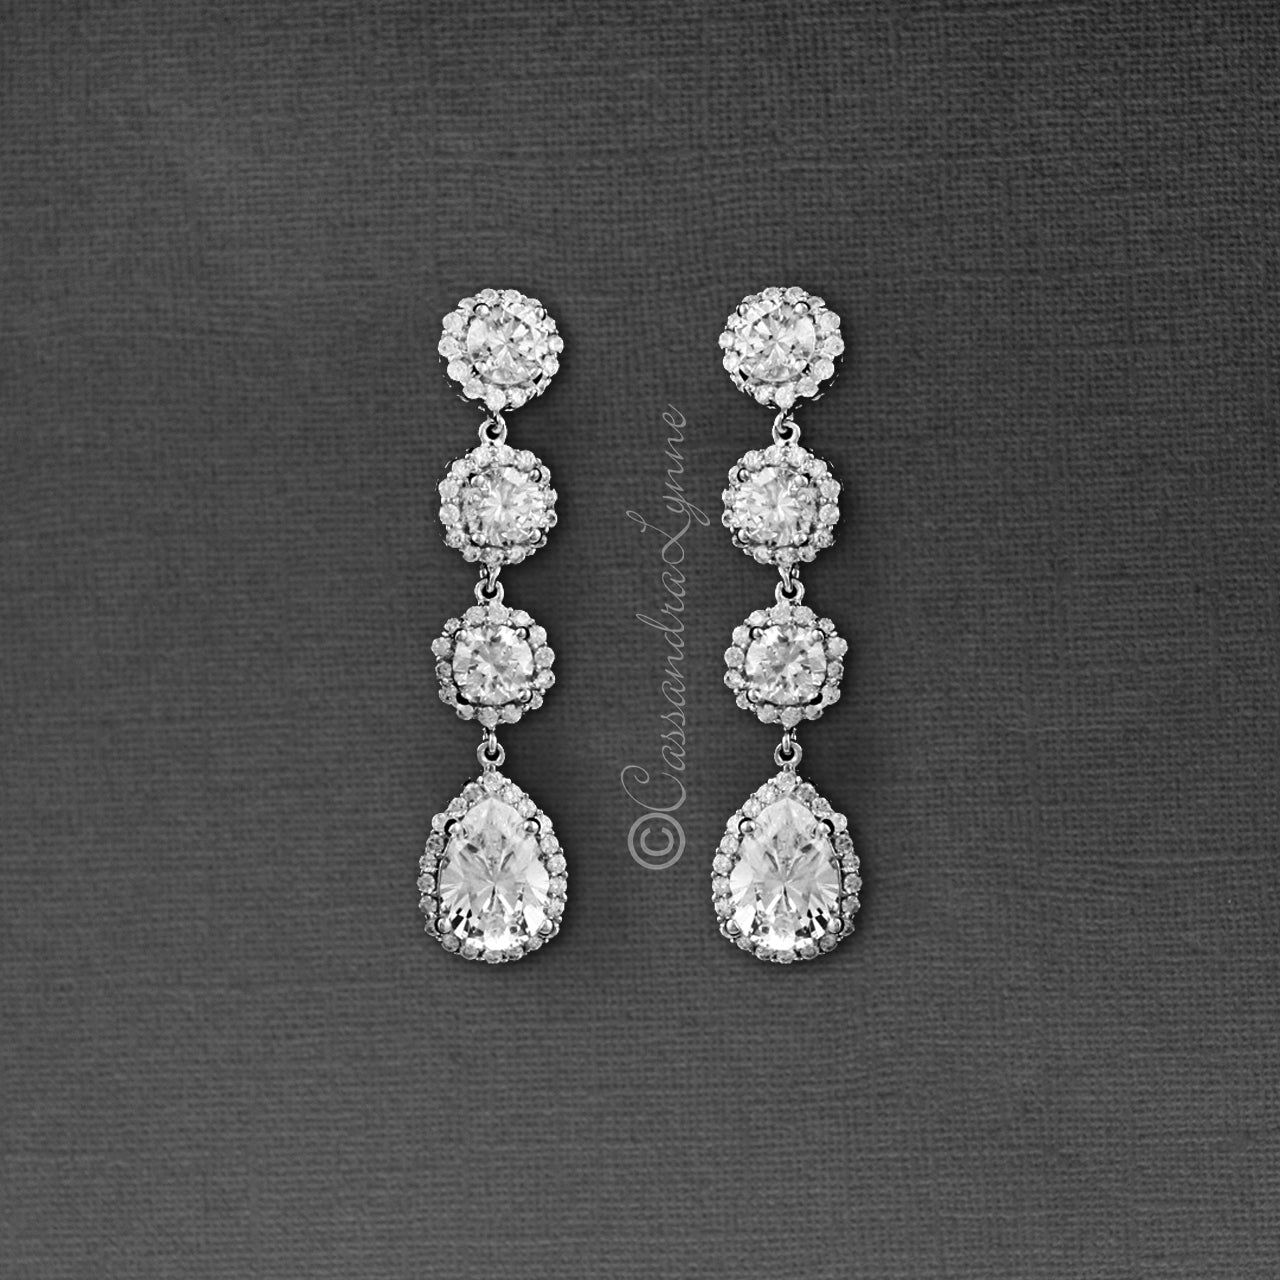 Clip-On CZ Bridal Earrings of Pave Round Drops